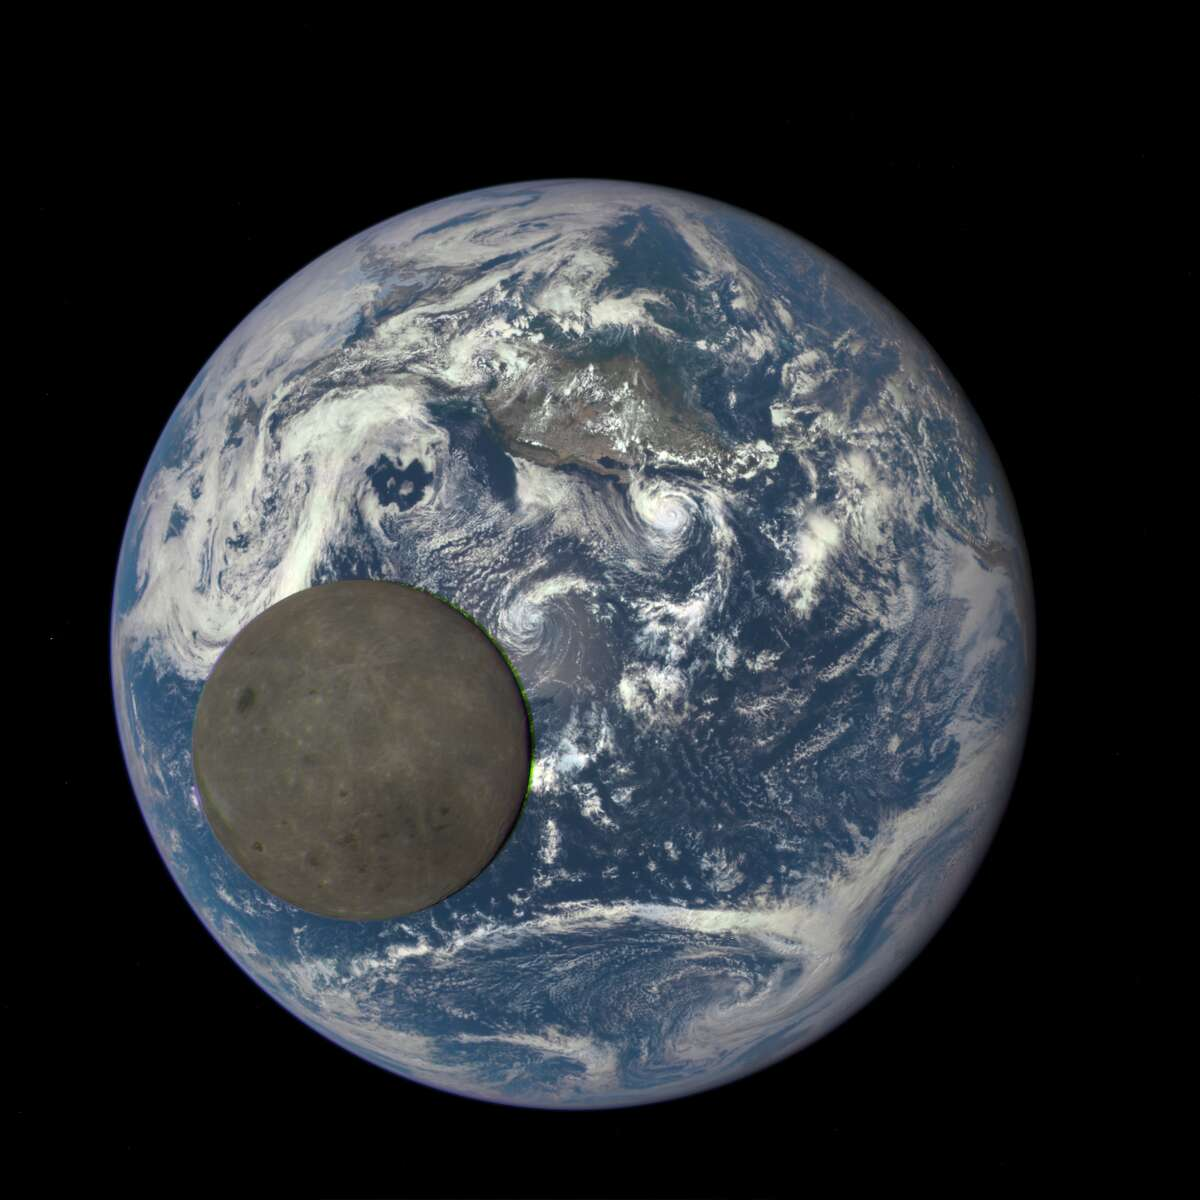 This image shows the far side of the moon, illuminated by the sun, as it crosses between the DSCOVR spacecraft's Earth Polychromatic Imaging Camera (EPIC) camera and telescope, and the Earth - one million miles away, July 16, 2015.